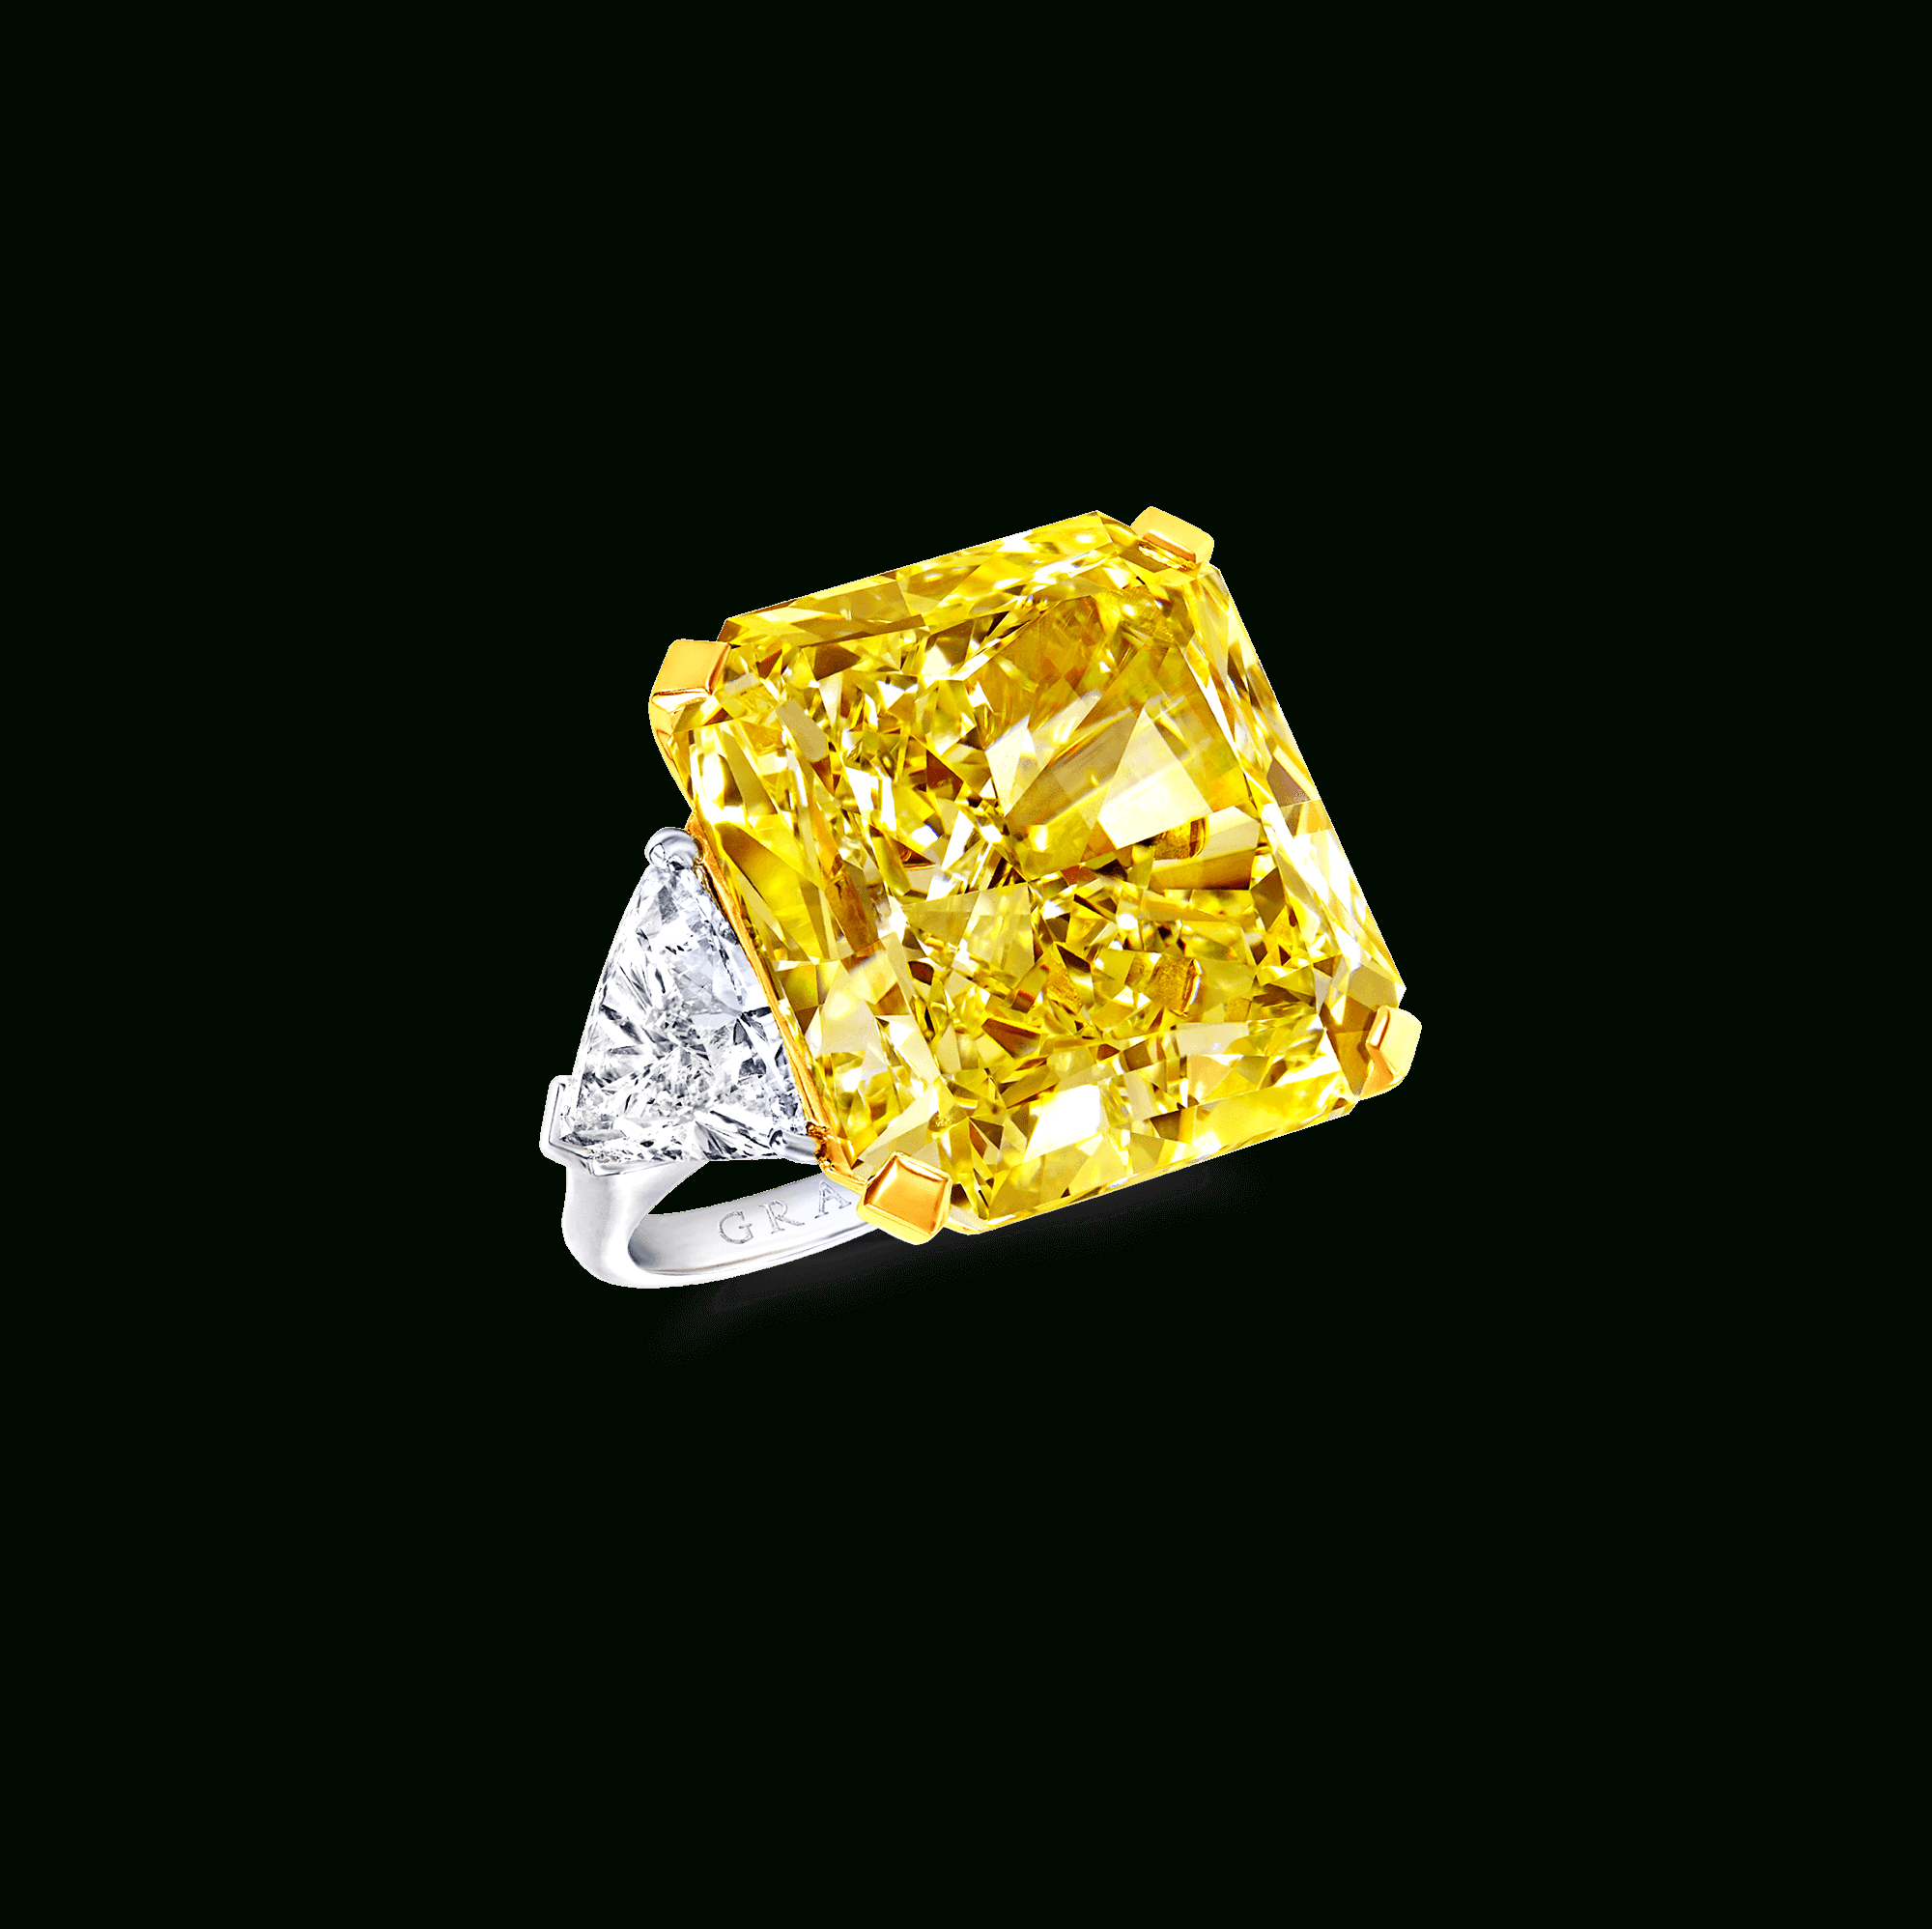 Radiant Cut Yellow And White Diamond Ring | Graff Within Radiant Yellow Diamond Rings (View 3 of 25)